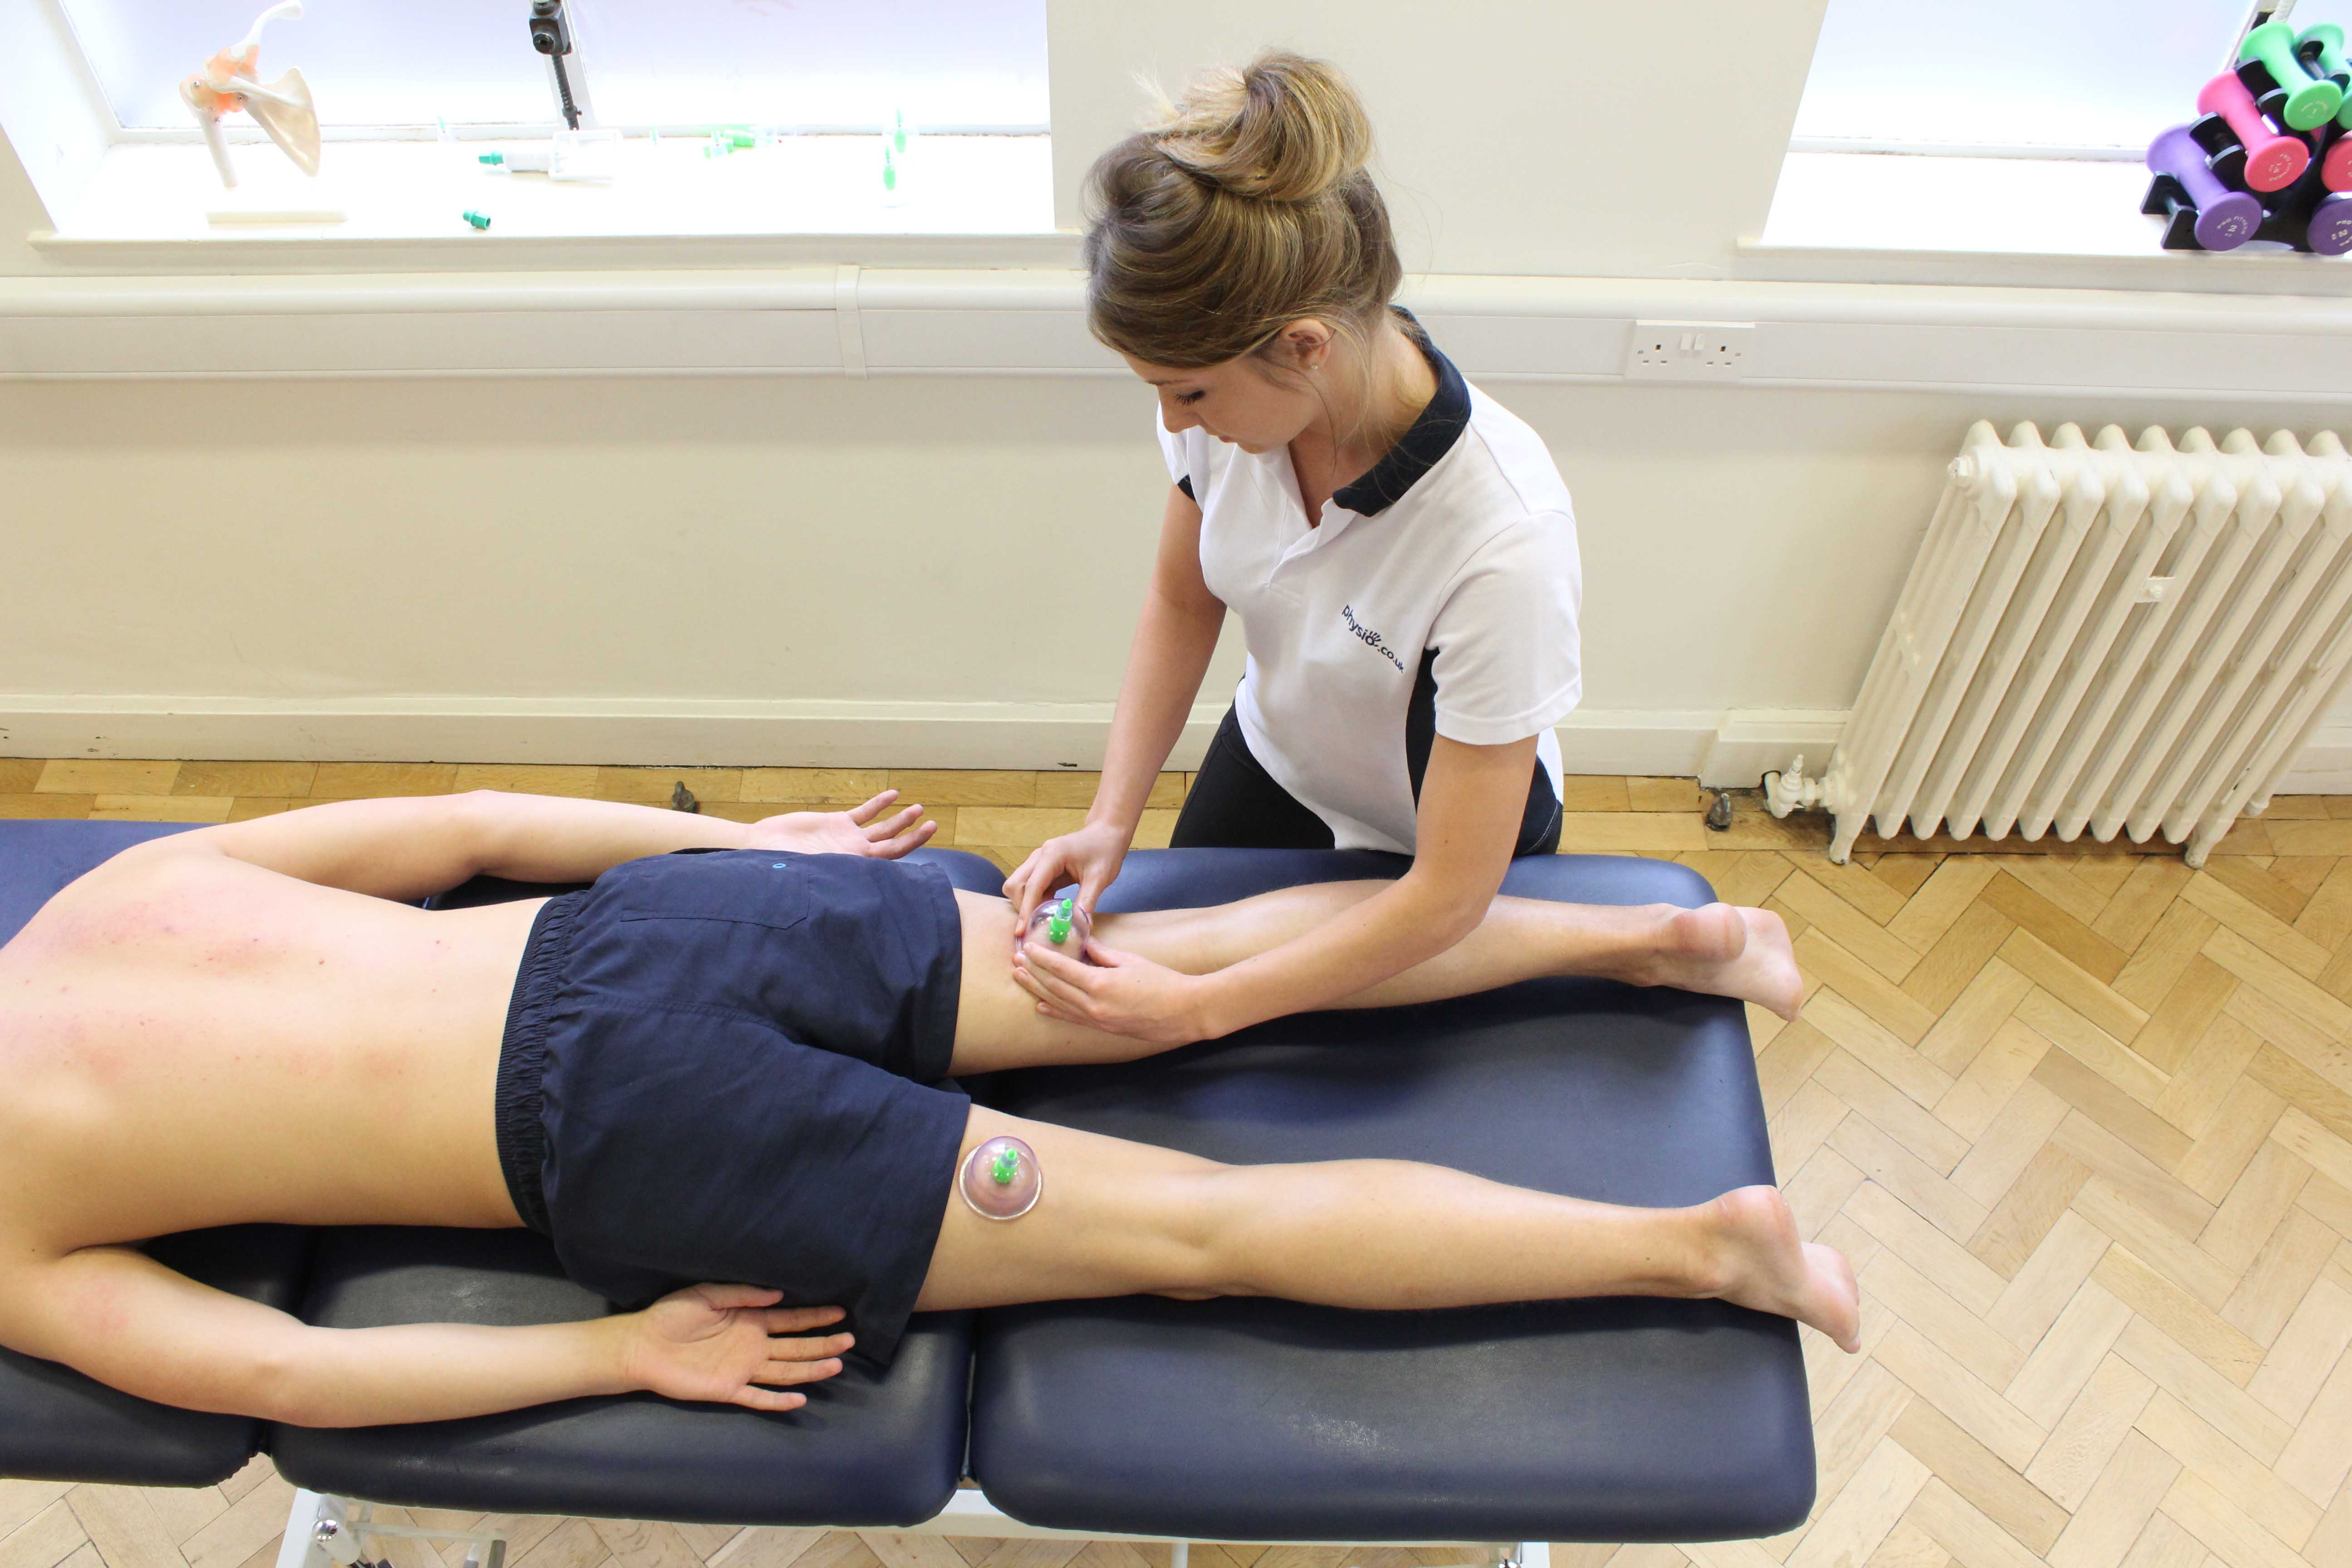 Cupping massage technique applied to the hamstring muscles by specialist therapist